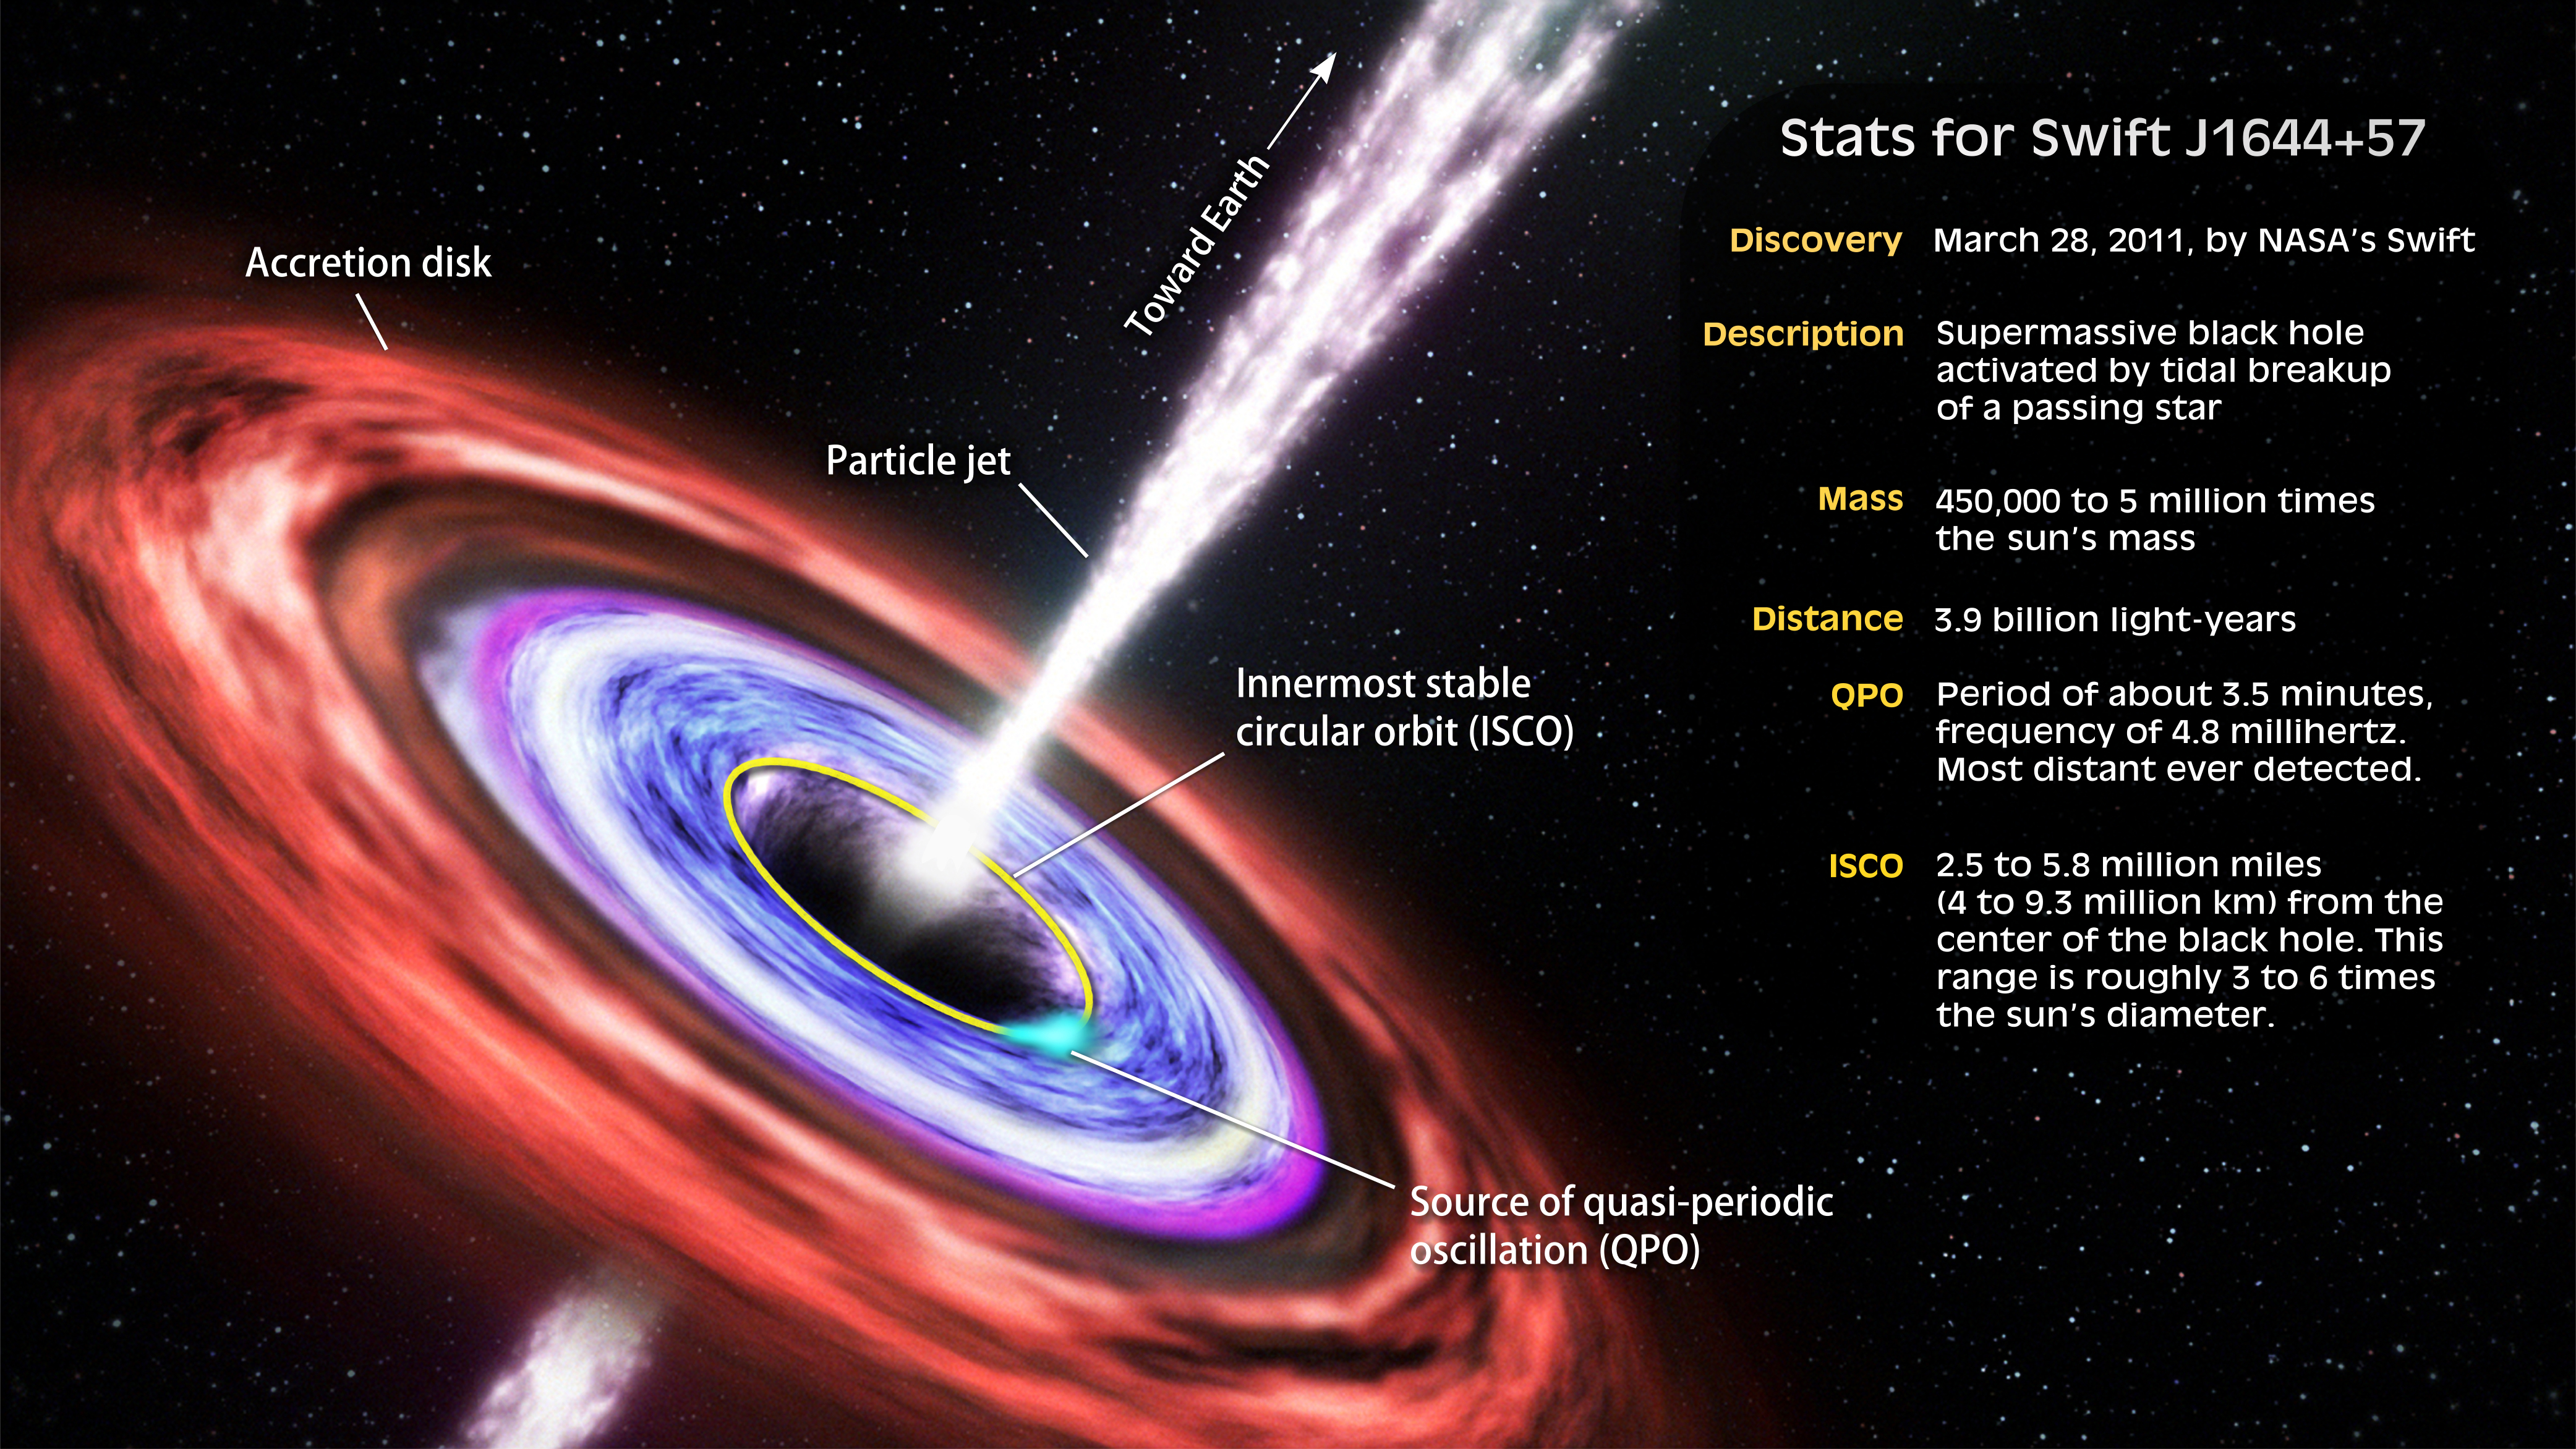 """""""French Theory"""" Says Something About Black Hole Theory, Or Lack Thereof"""